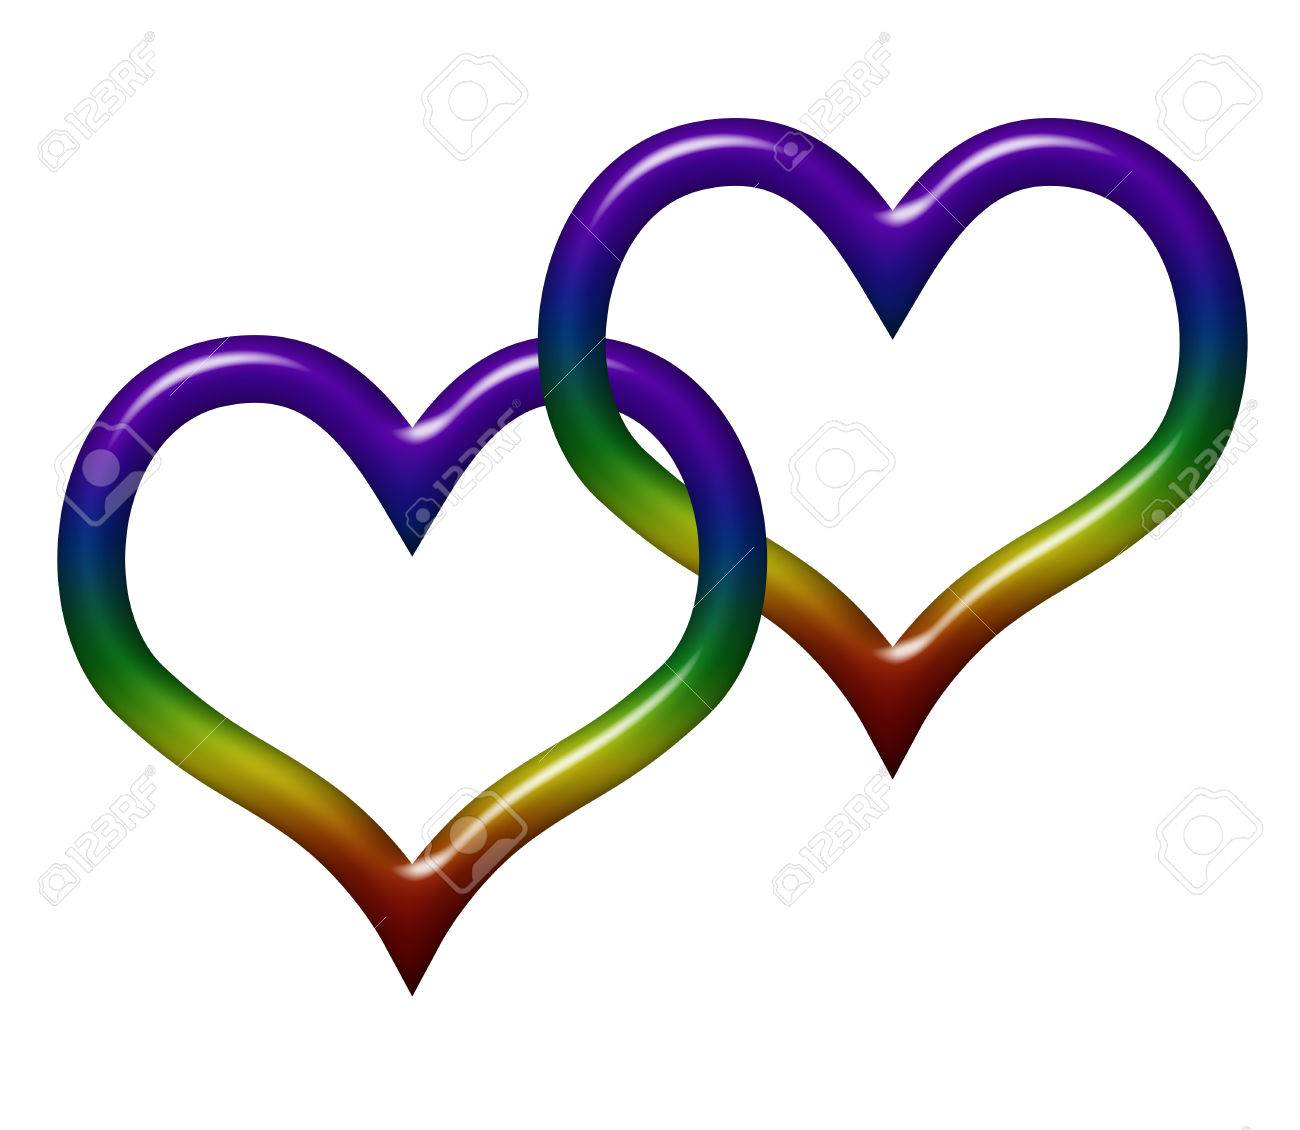 Two heart symbols in lgbt flag colors isolated on white with two heart symbols in lgbt flag colors isolated on white with copy space gay biocorpaavc Choice Image